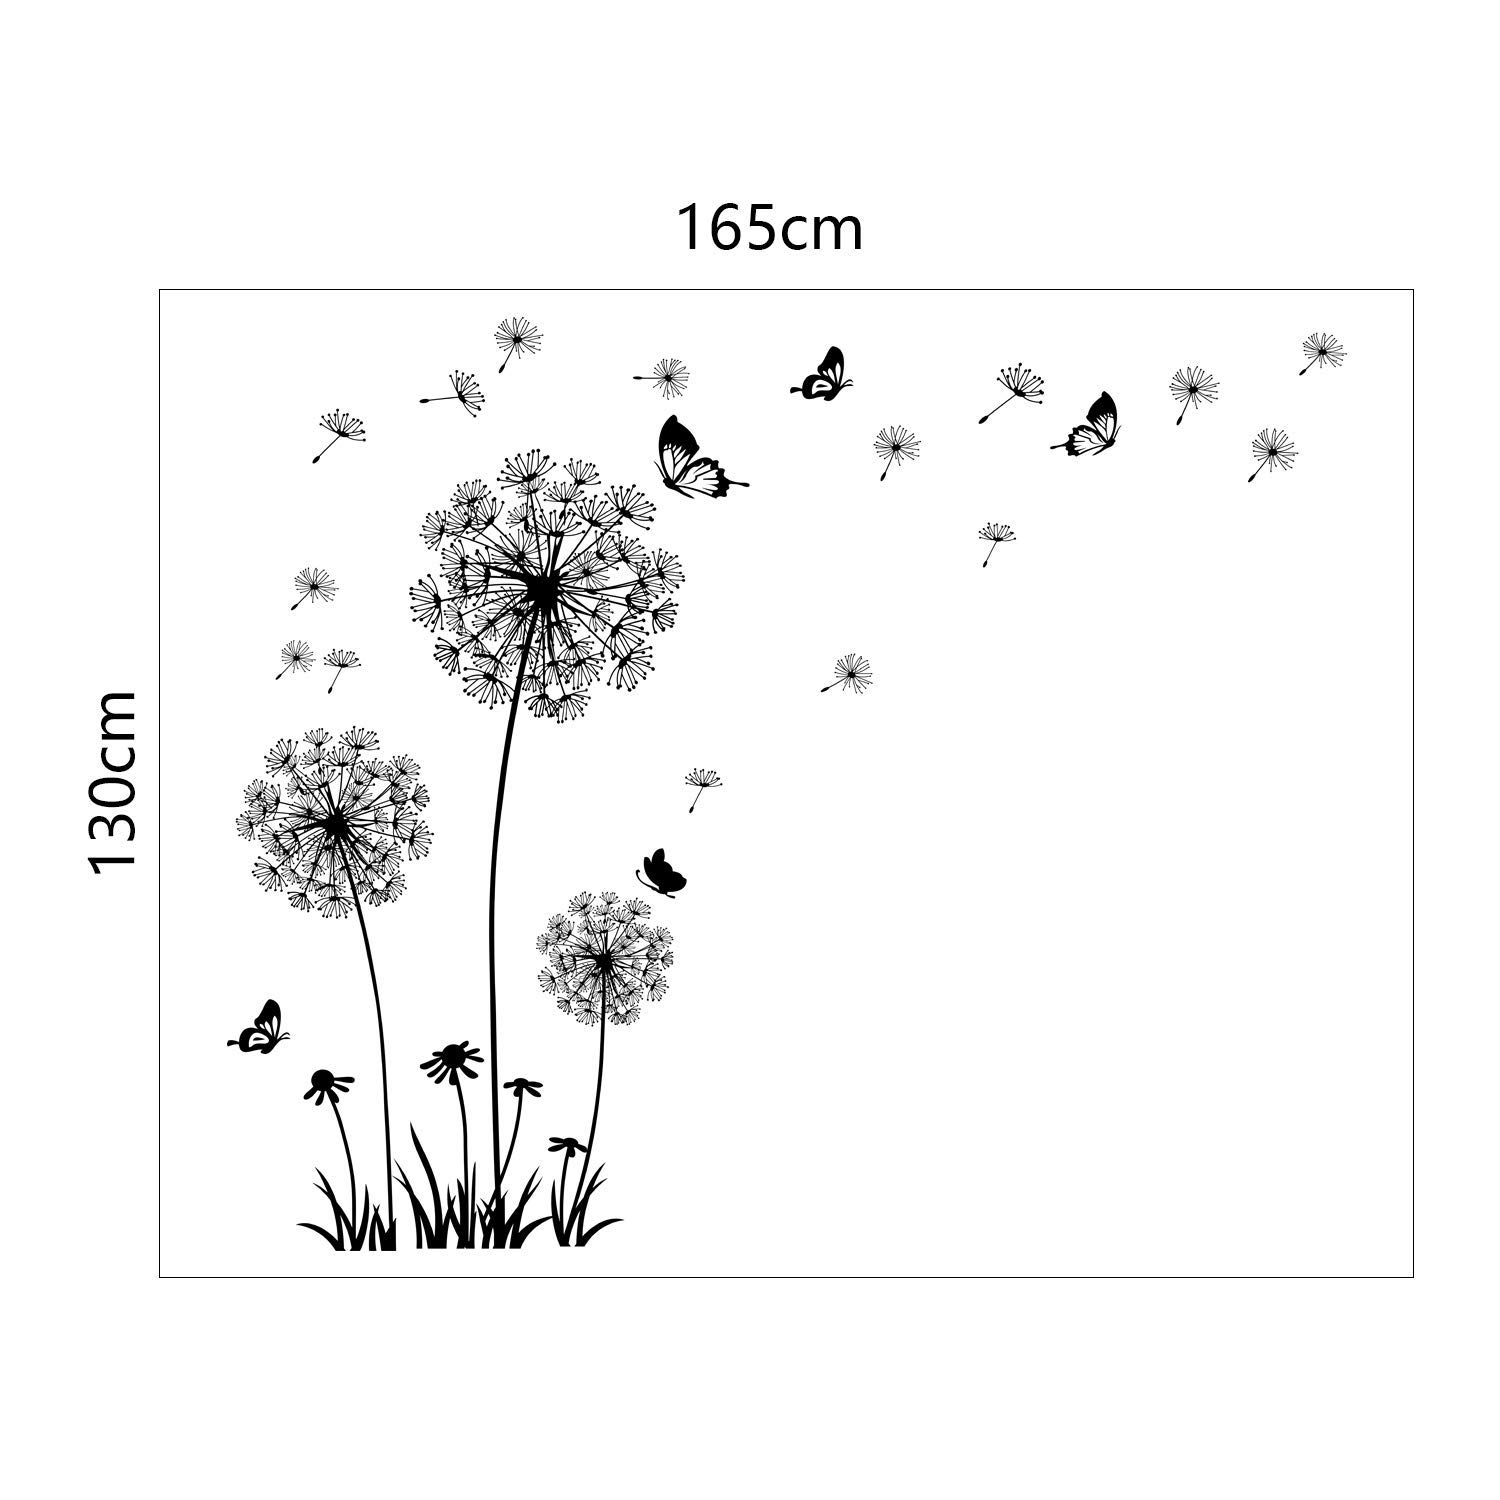 5ae436bd19 Amazon.com: Runtoo Giant Dandelion Wall Decals Flying Flowers Butterflies  Wall Stickers Plants Wall Art Living Room Bedroom Decor [Black]: Home &  Kitchen